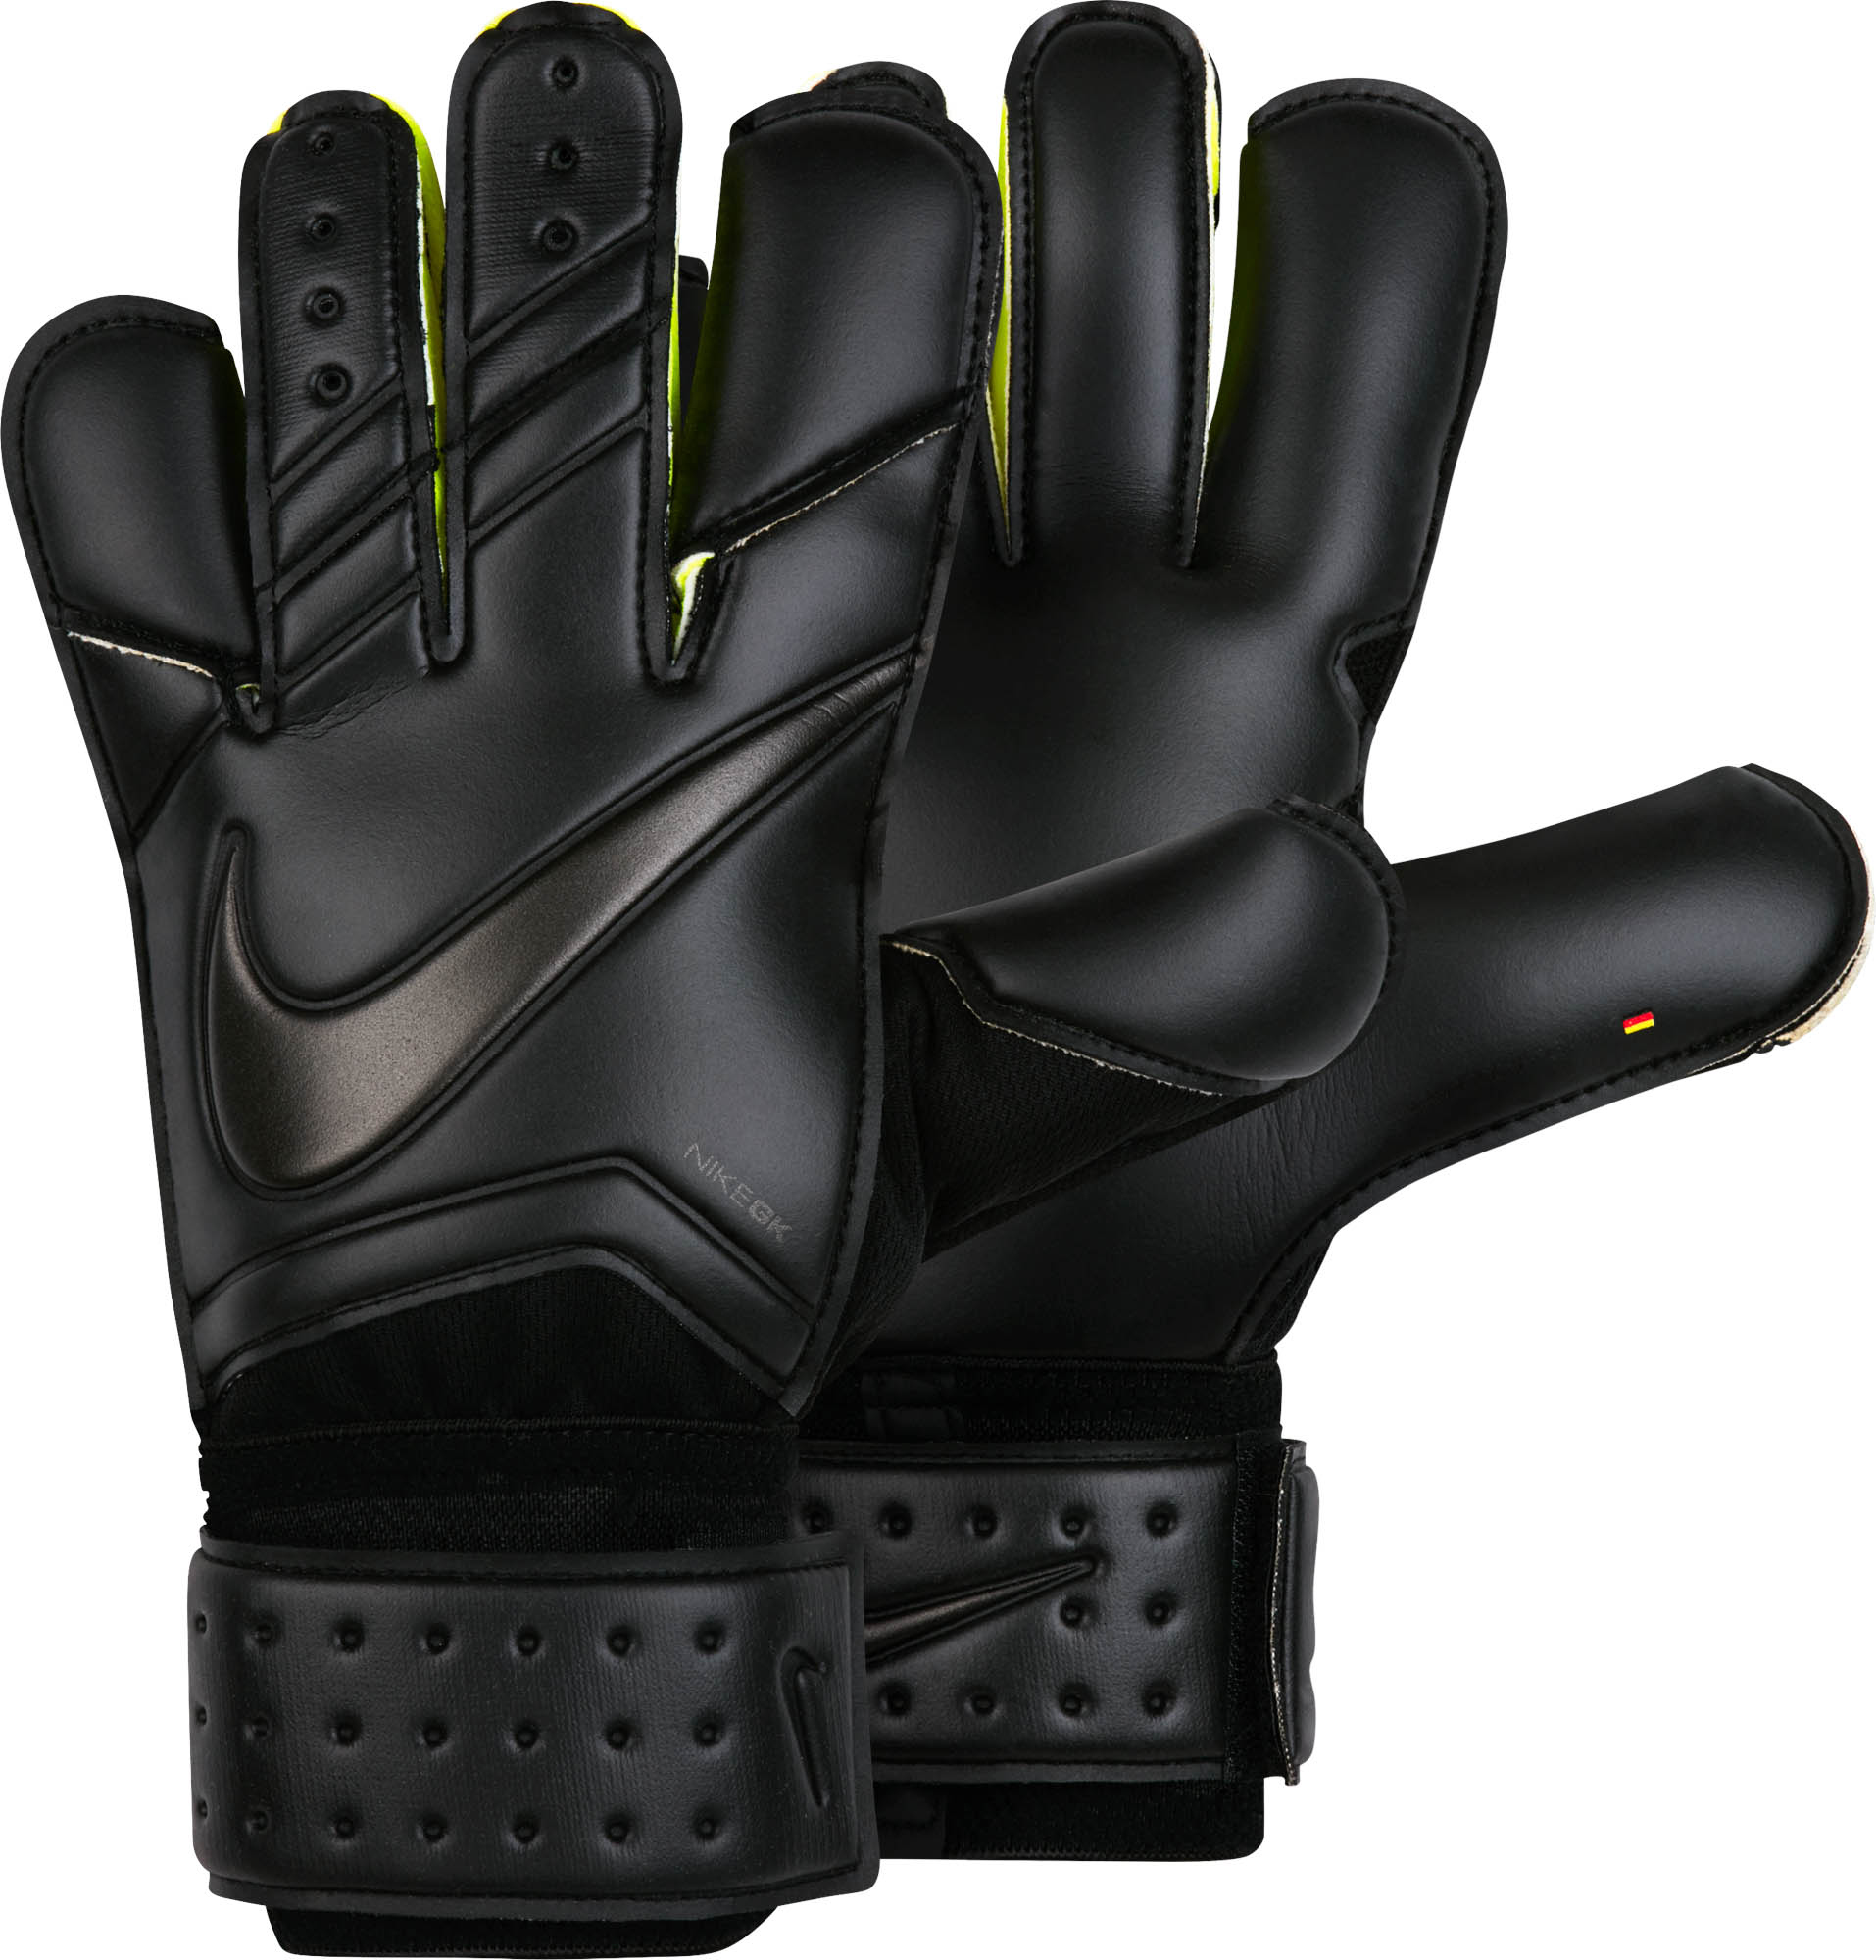 Nike Soccer Gloves: Nike Vapor Grip 3 Goalkeeper Gloves